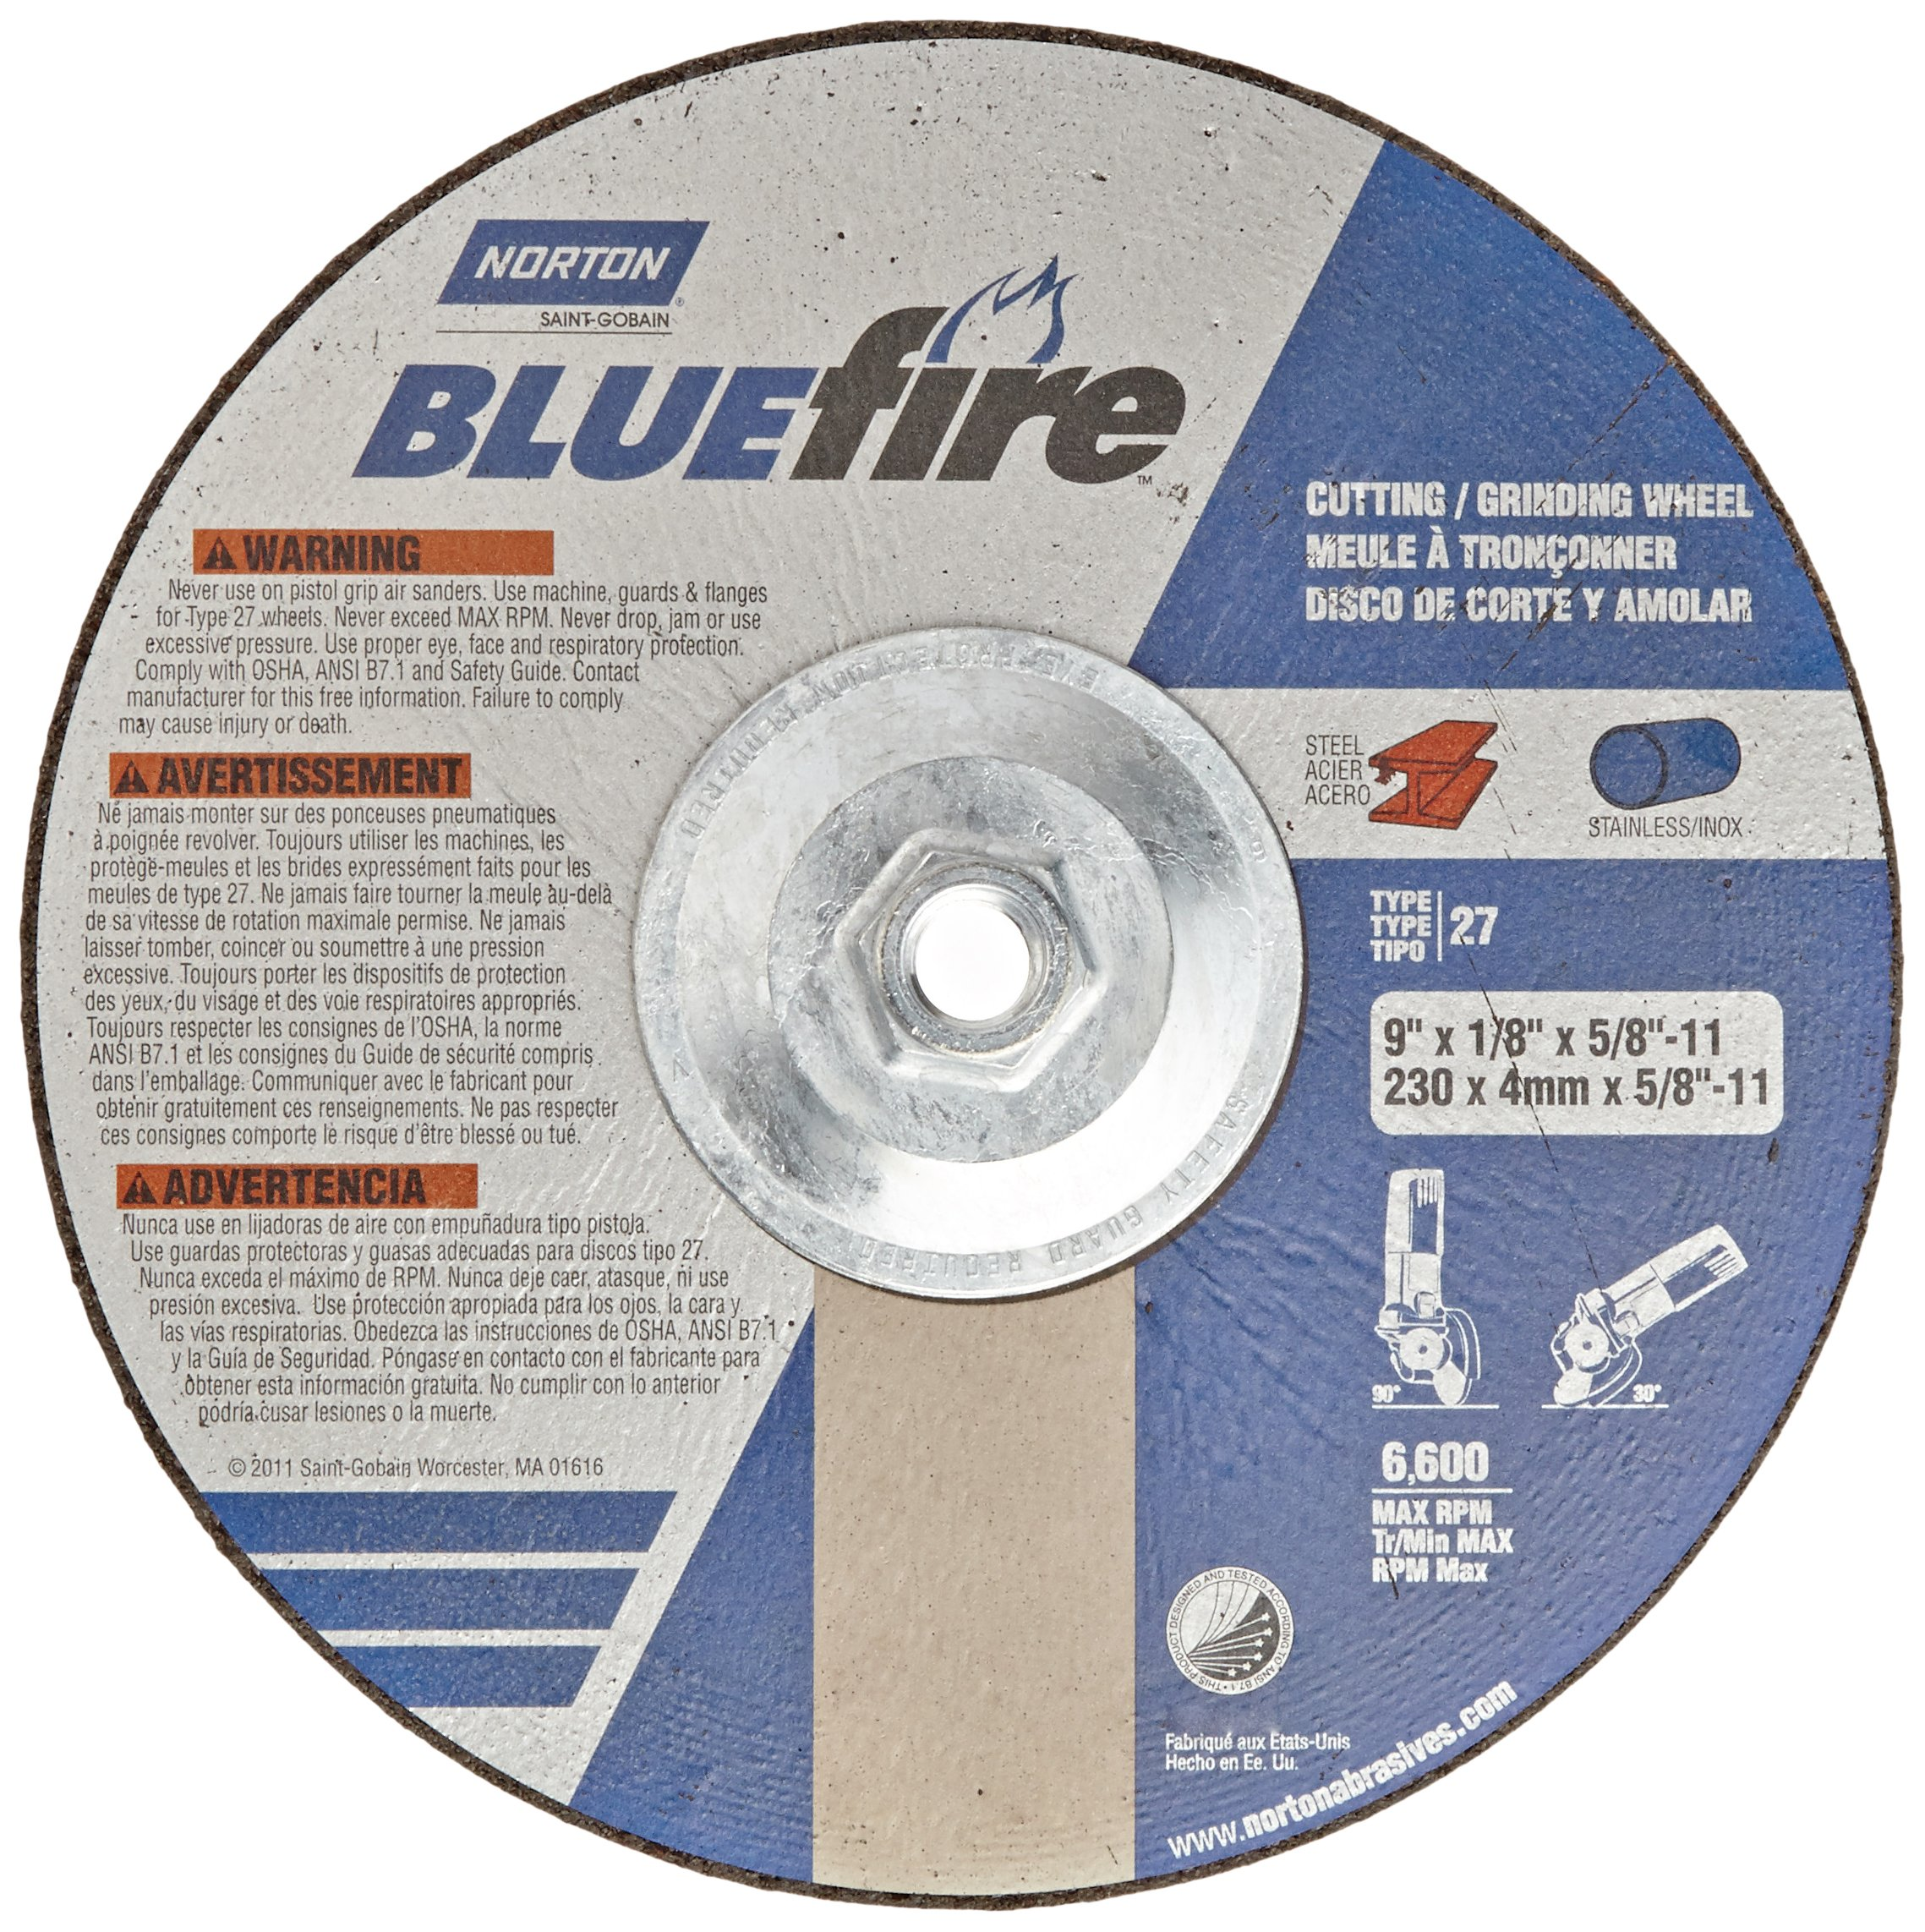 Norton Blue Fire Plus Depressed Center Abrasive Wheel, Type 27, Zirconia Alumina, 5/8''-11 Hub, 9'' Diameter x 1/8'' Thickness  (Pack of 1)